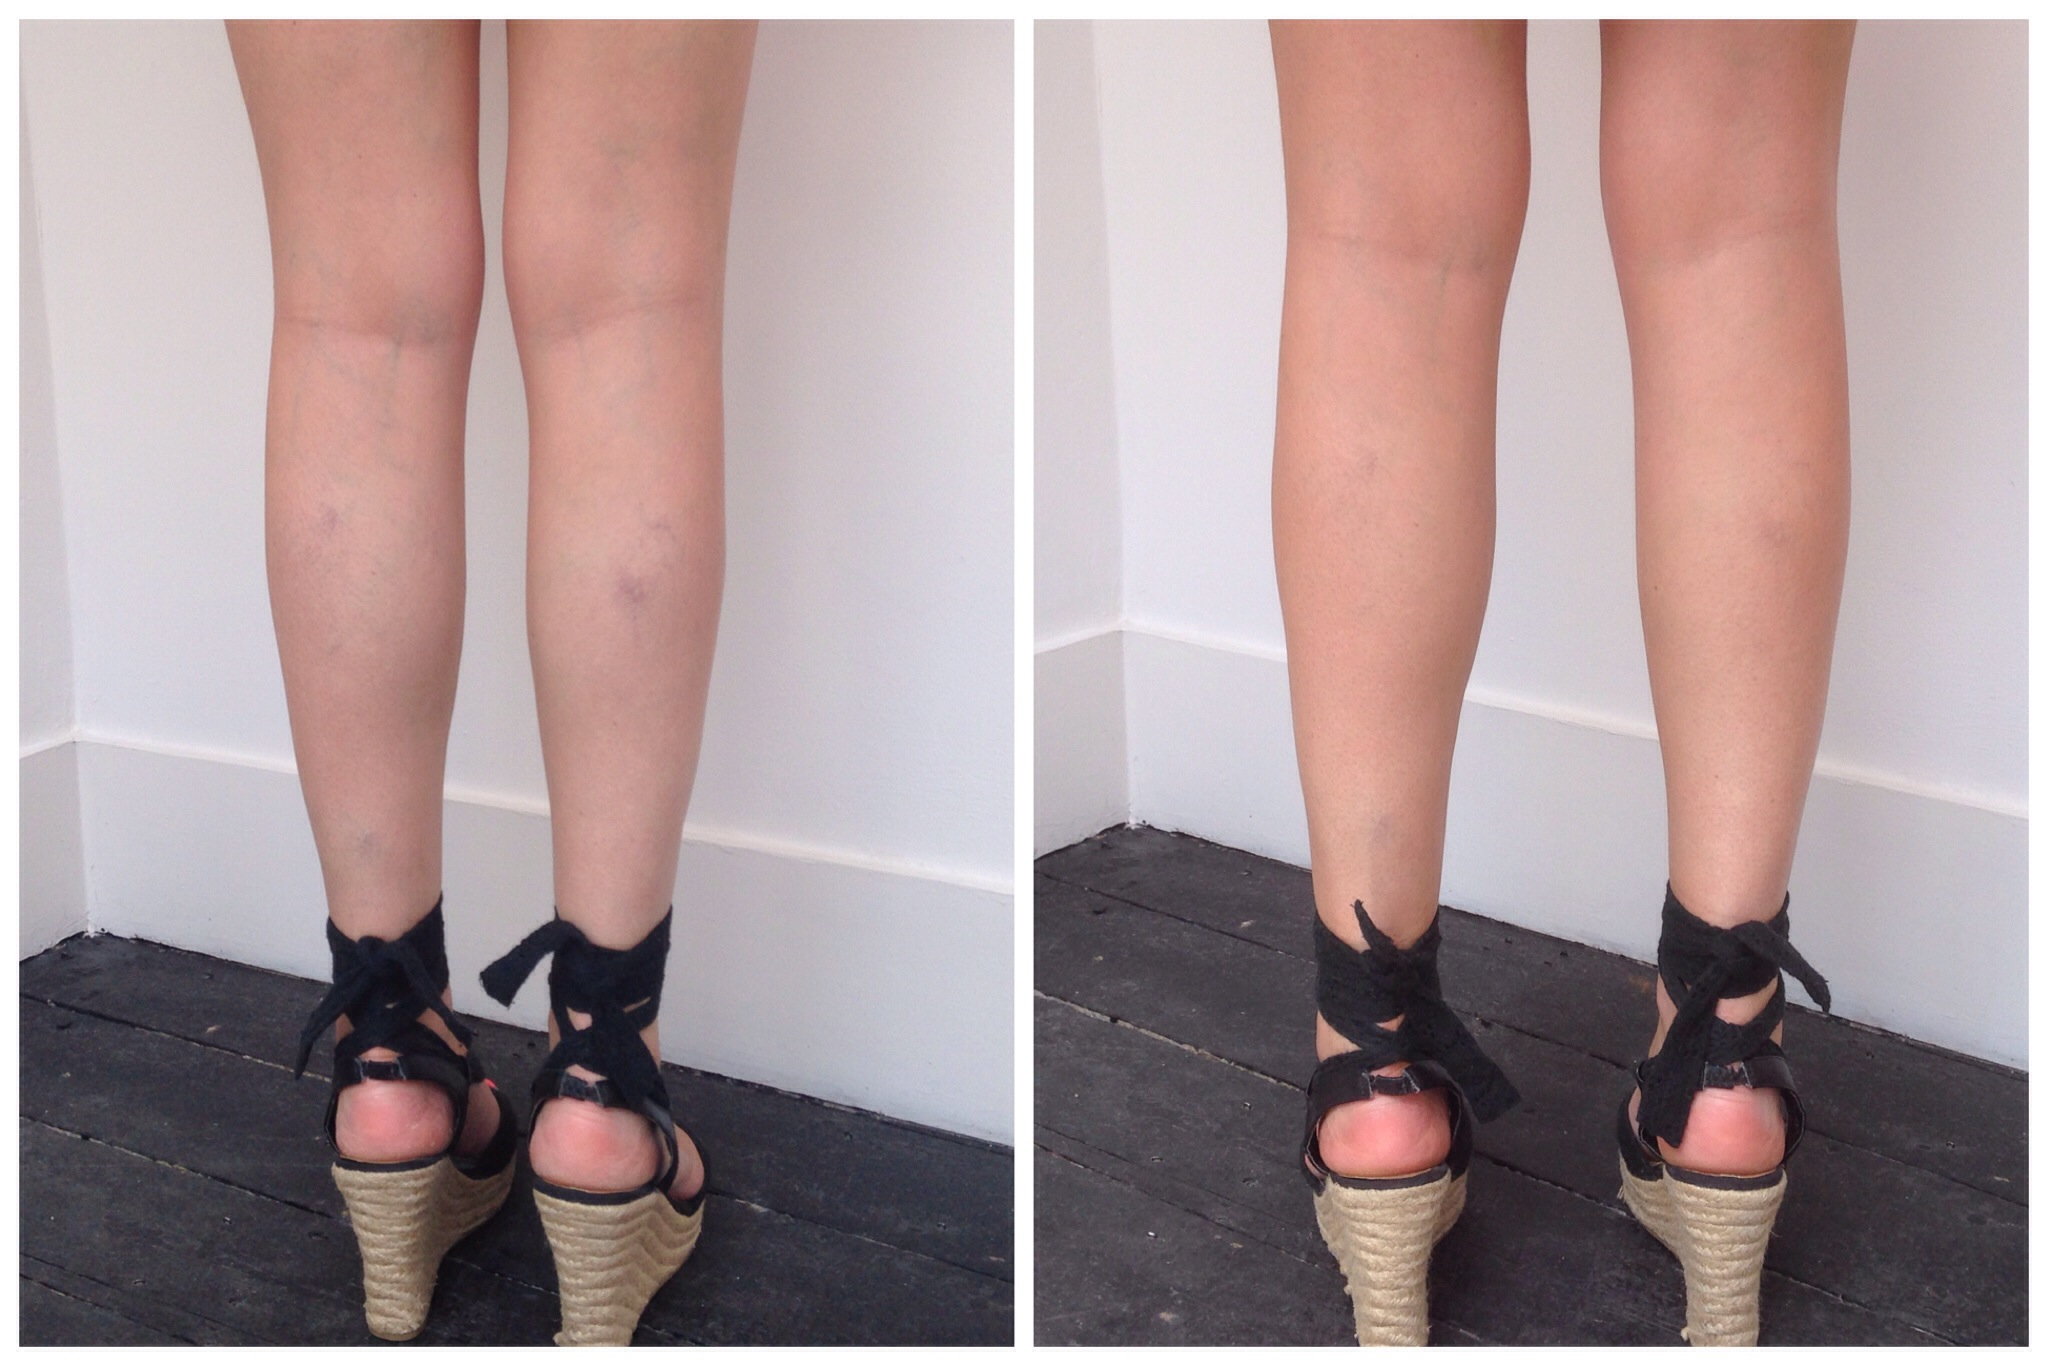 Leg Make Up to Cover Veins